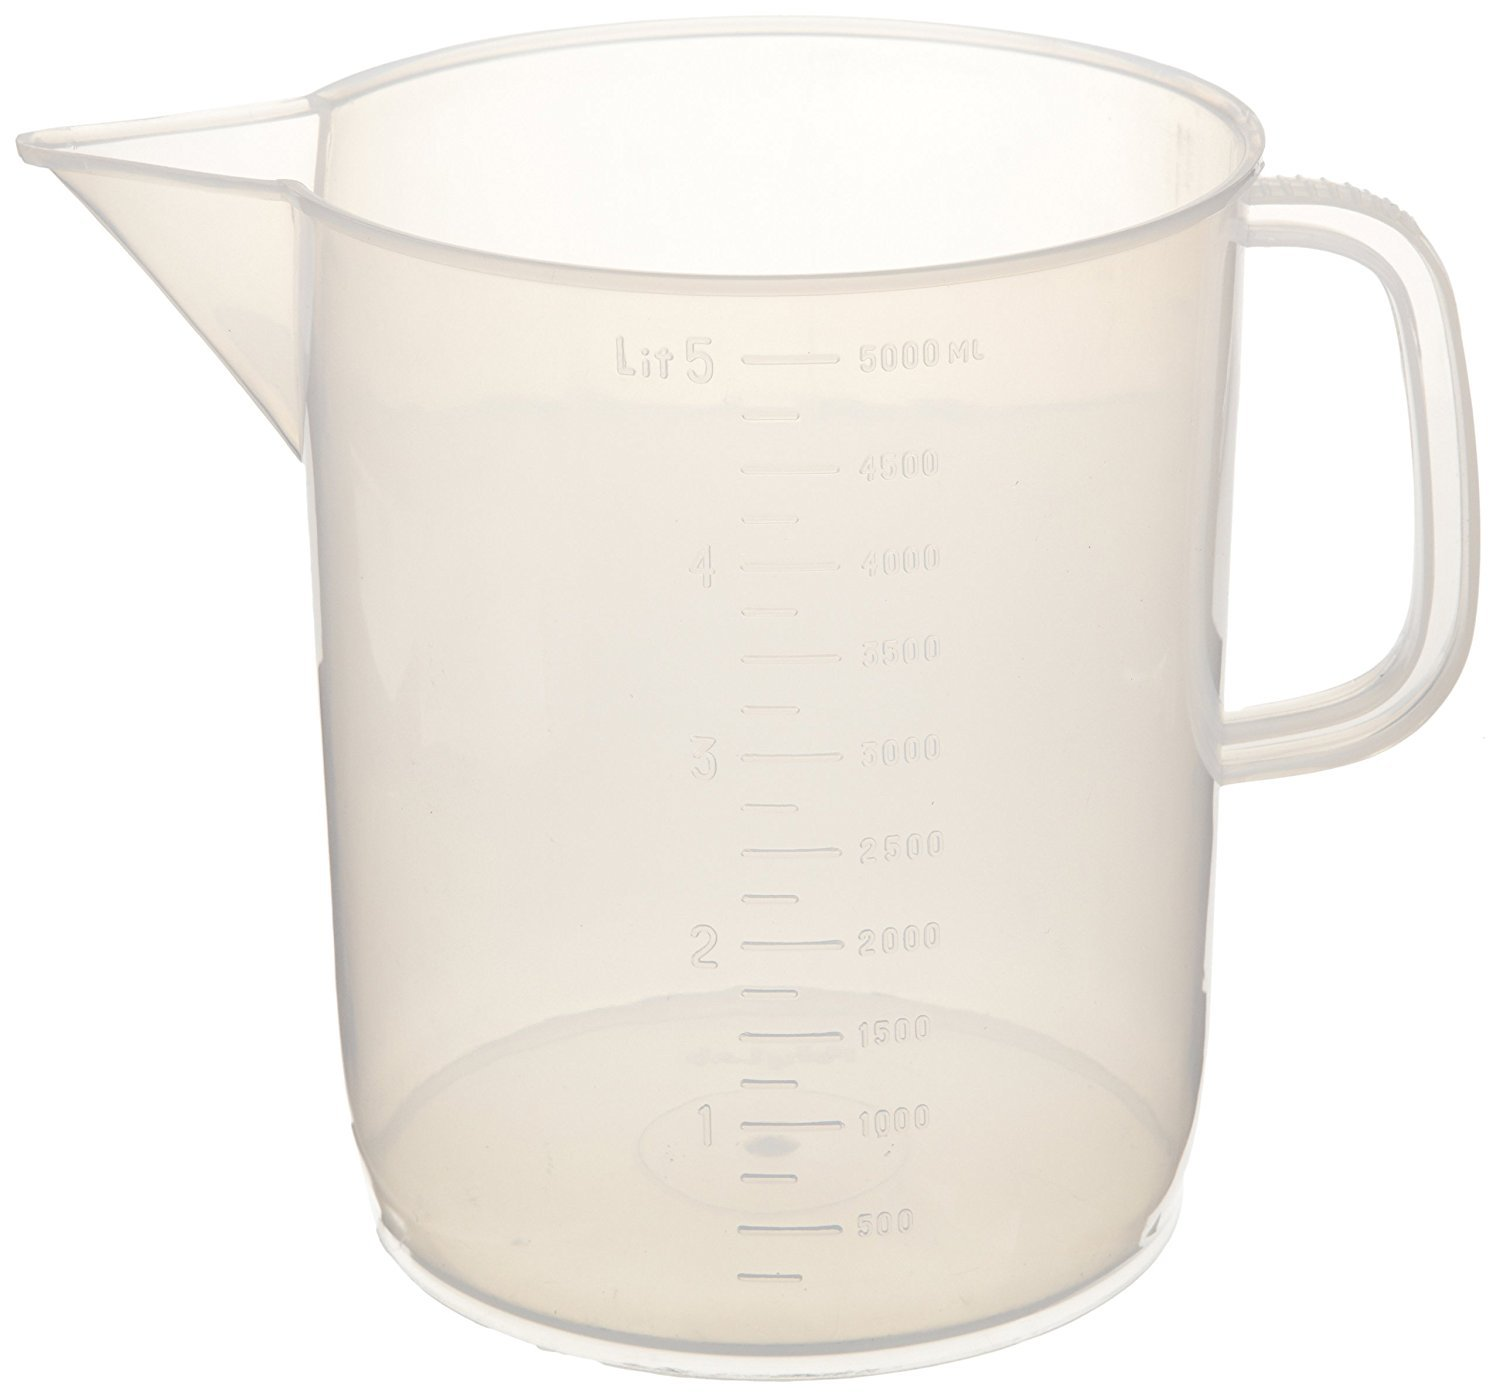 PSC 3798802 Polypropylene Graduated Pitcher, 5 L , 11'' Height, 9'' Wide, 7.5'' Length, 169.07 Fluid_Ounces , Polypropylene